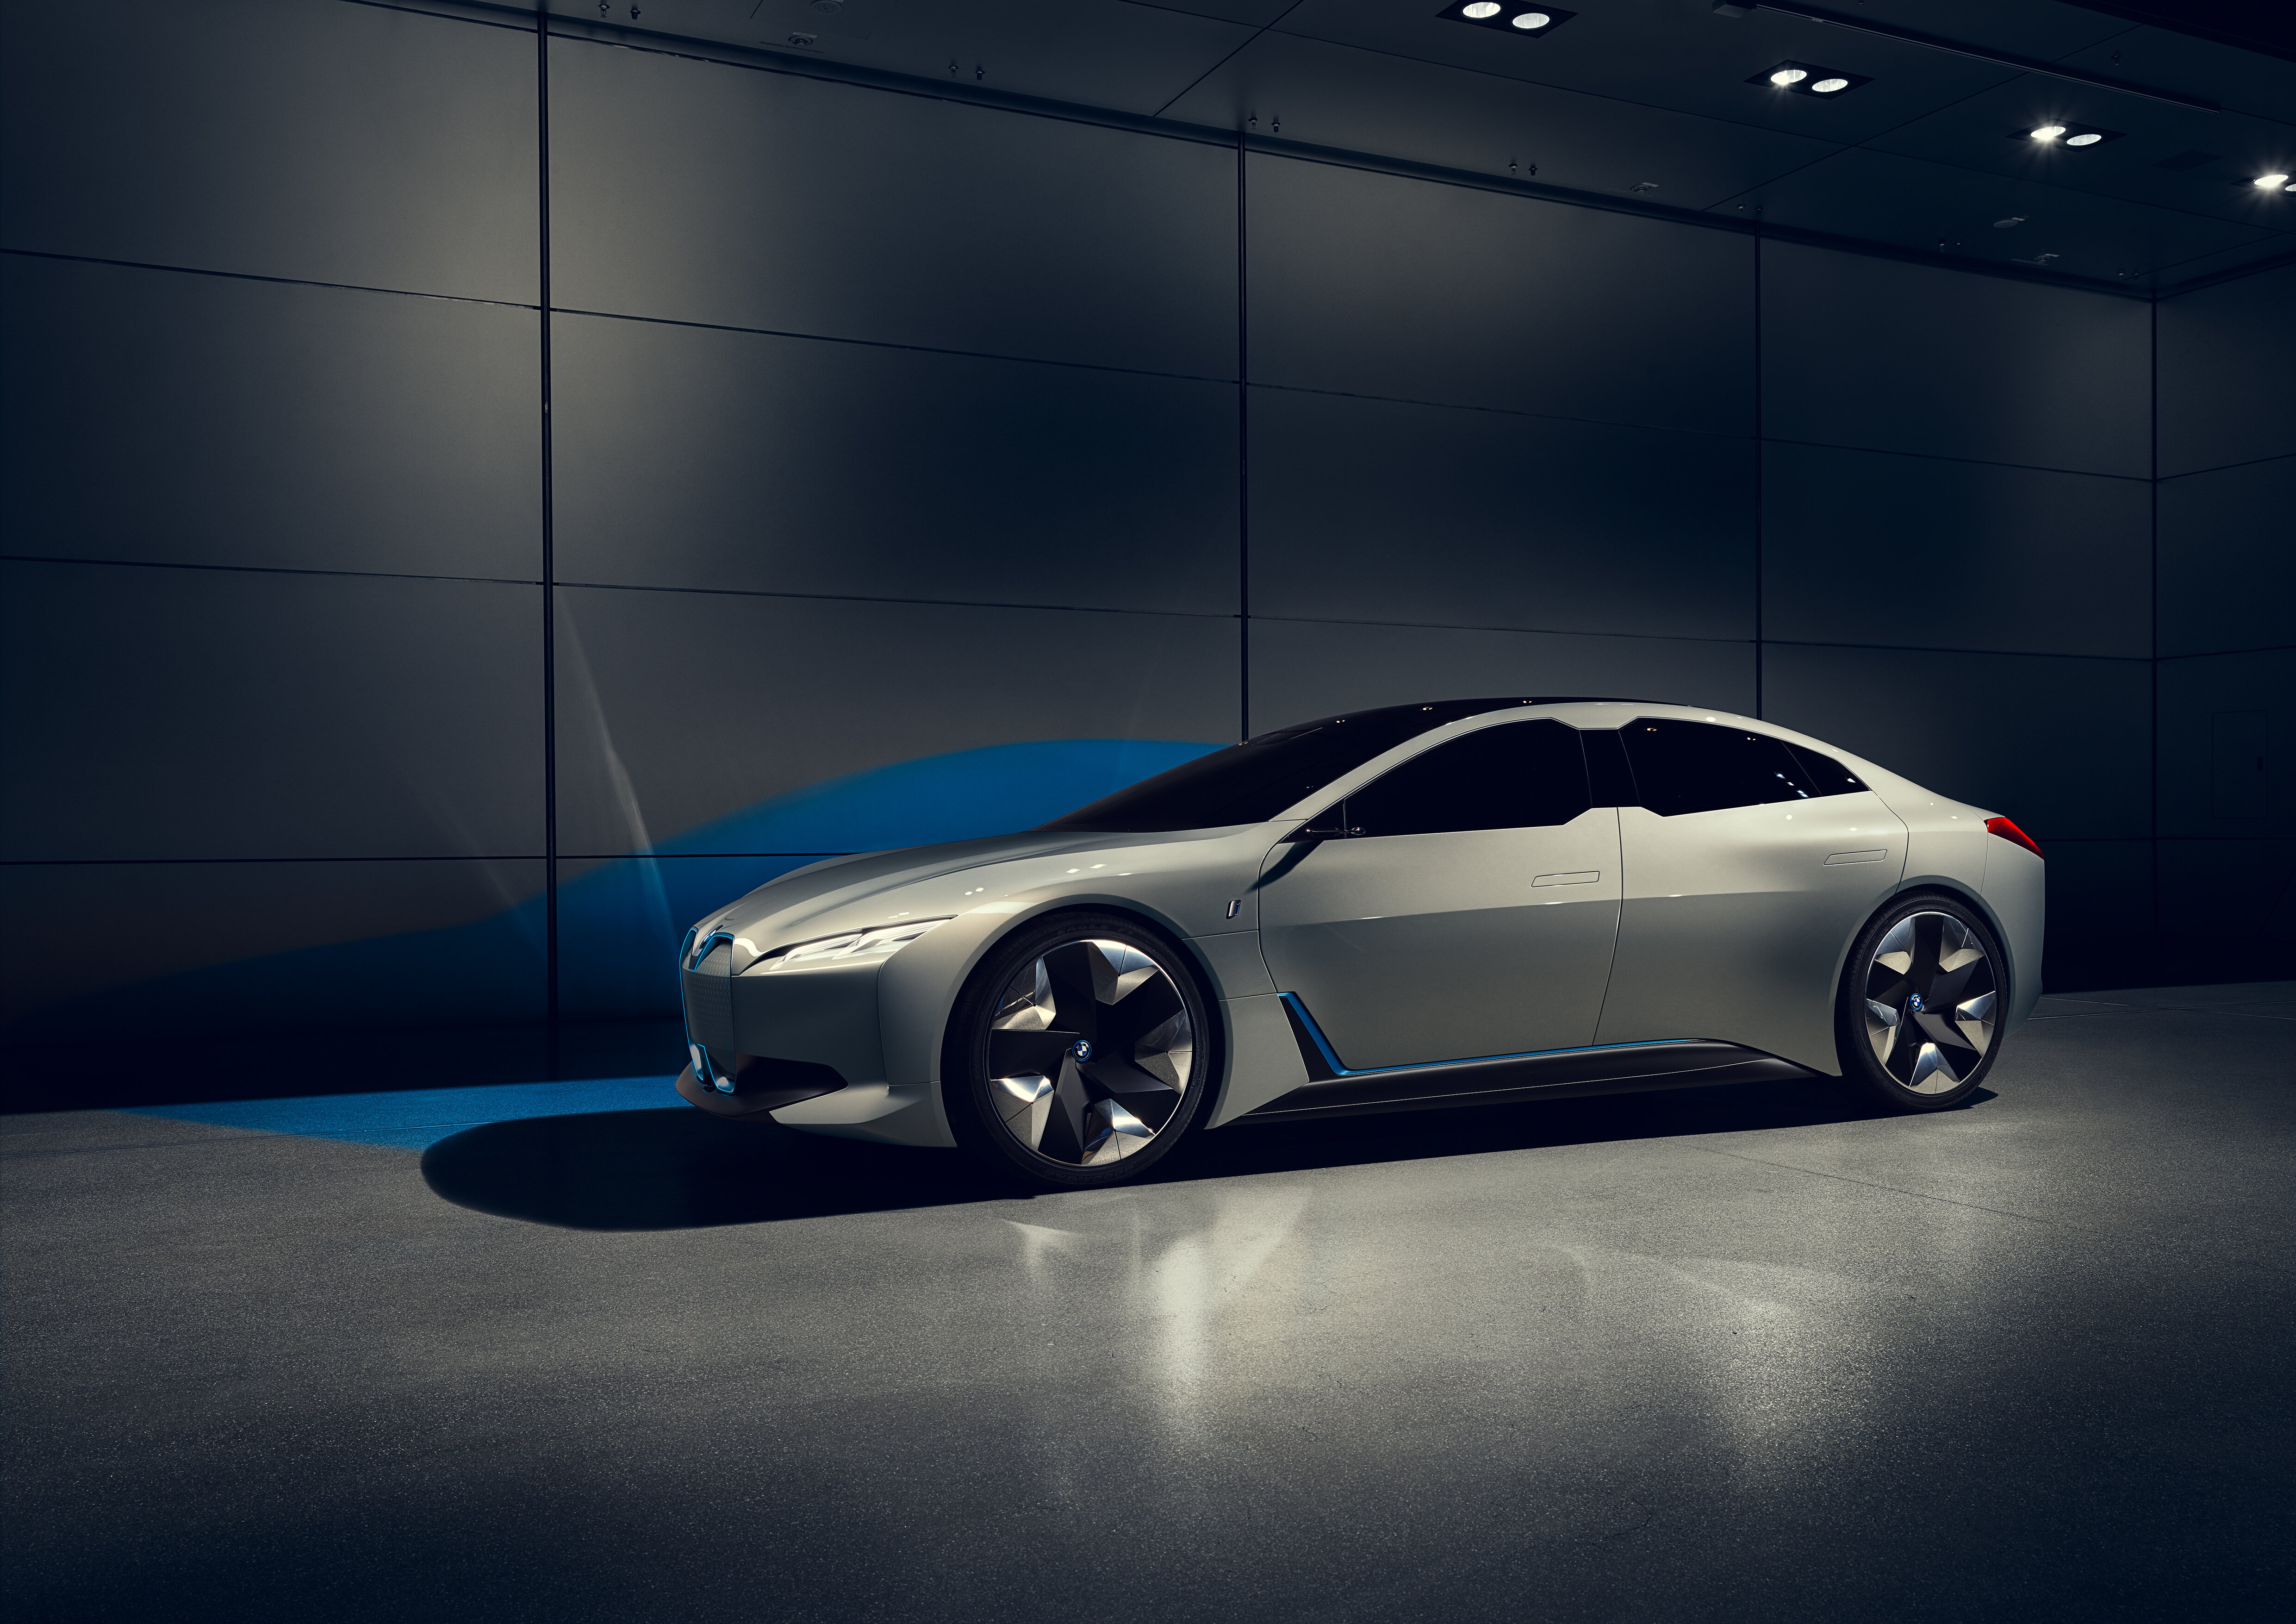 bmw i4 2020 - rumors, news, release date, price, power